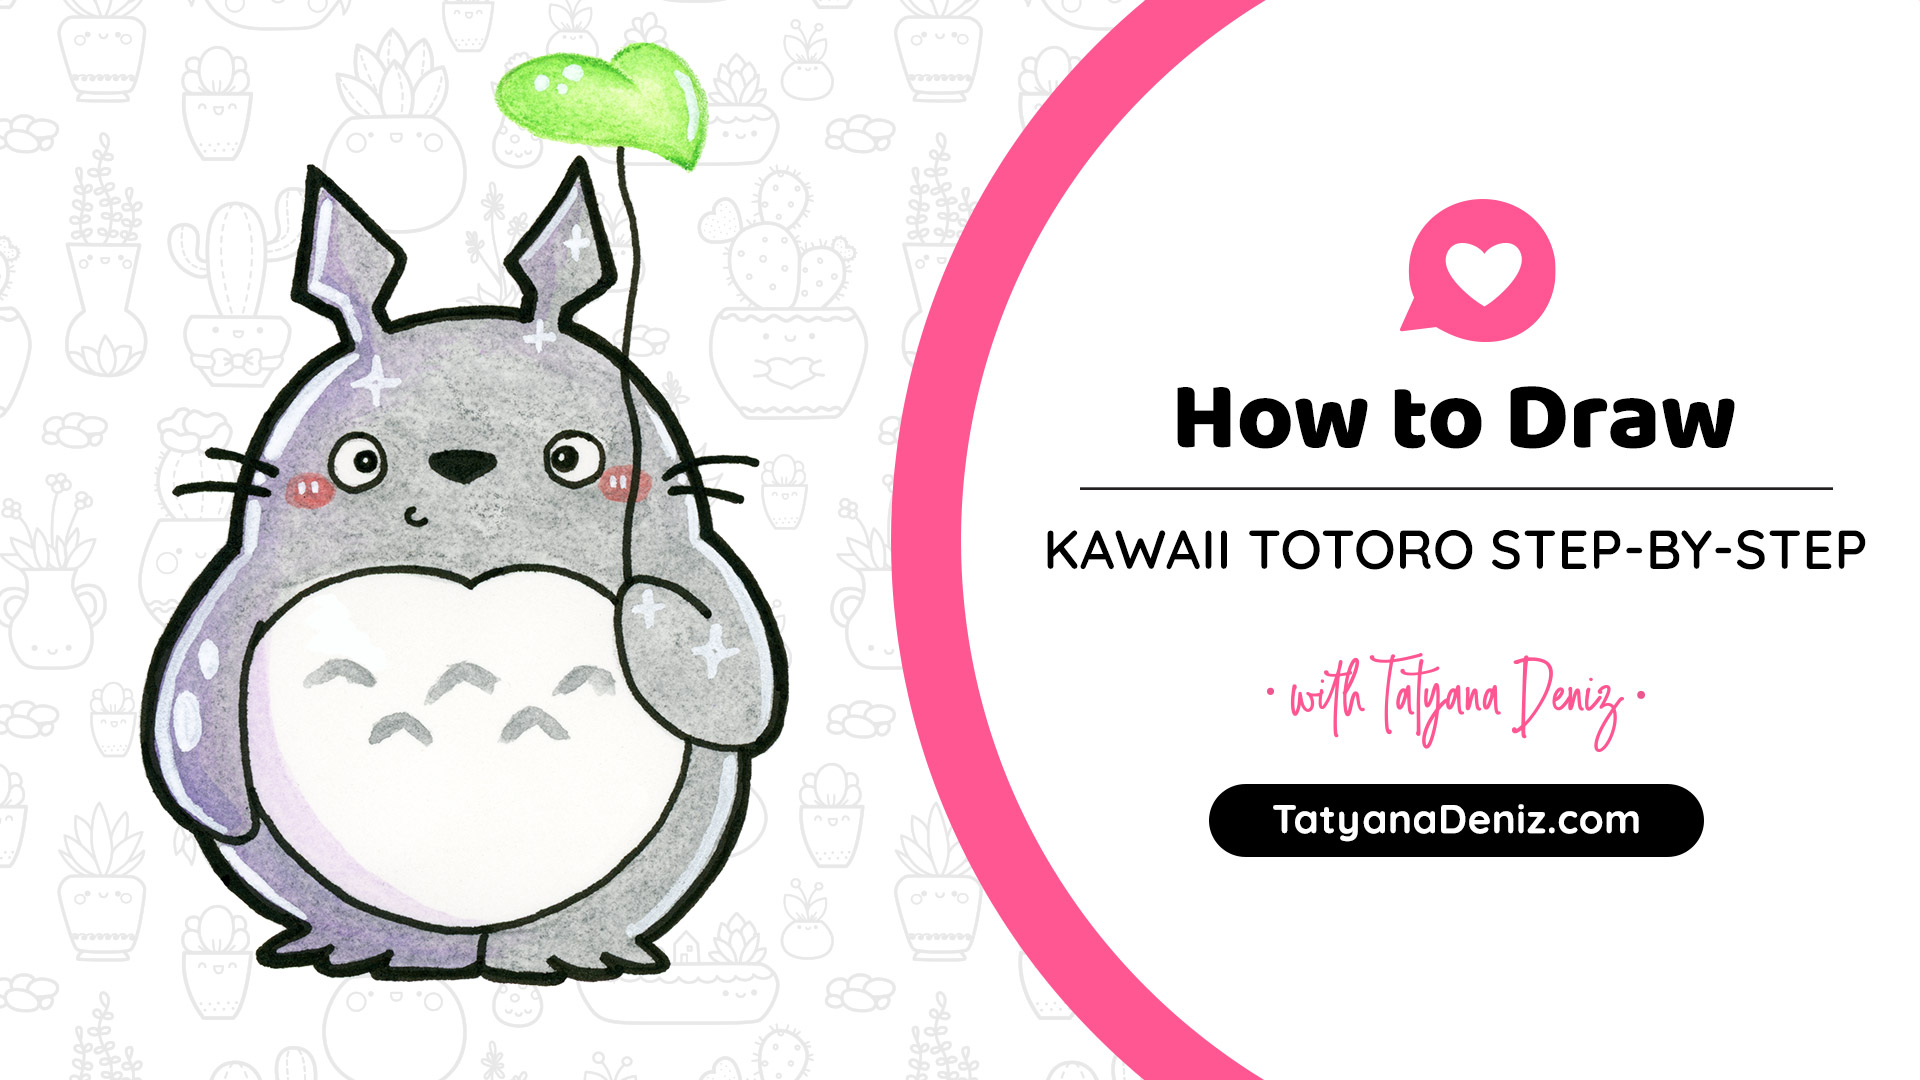 How to Draw Kawaii Totoro Step-by-step with Tatyana Deniz